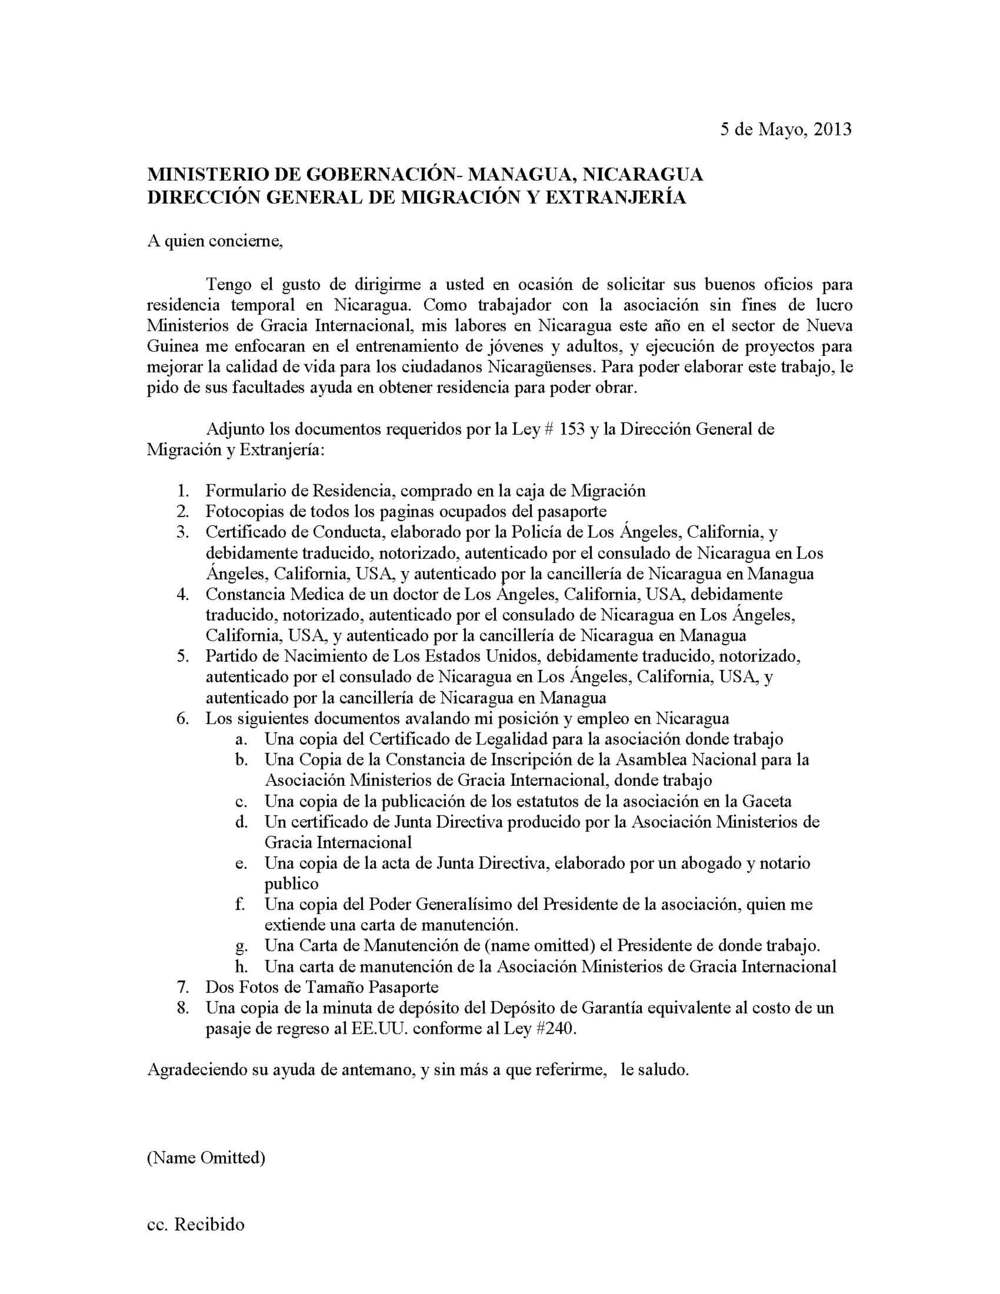 Click here to see an example Carta de Solicitud for Residency